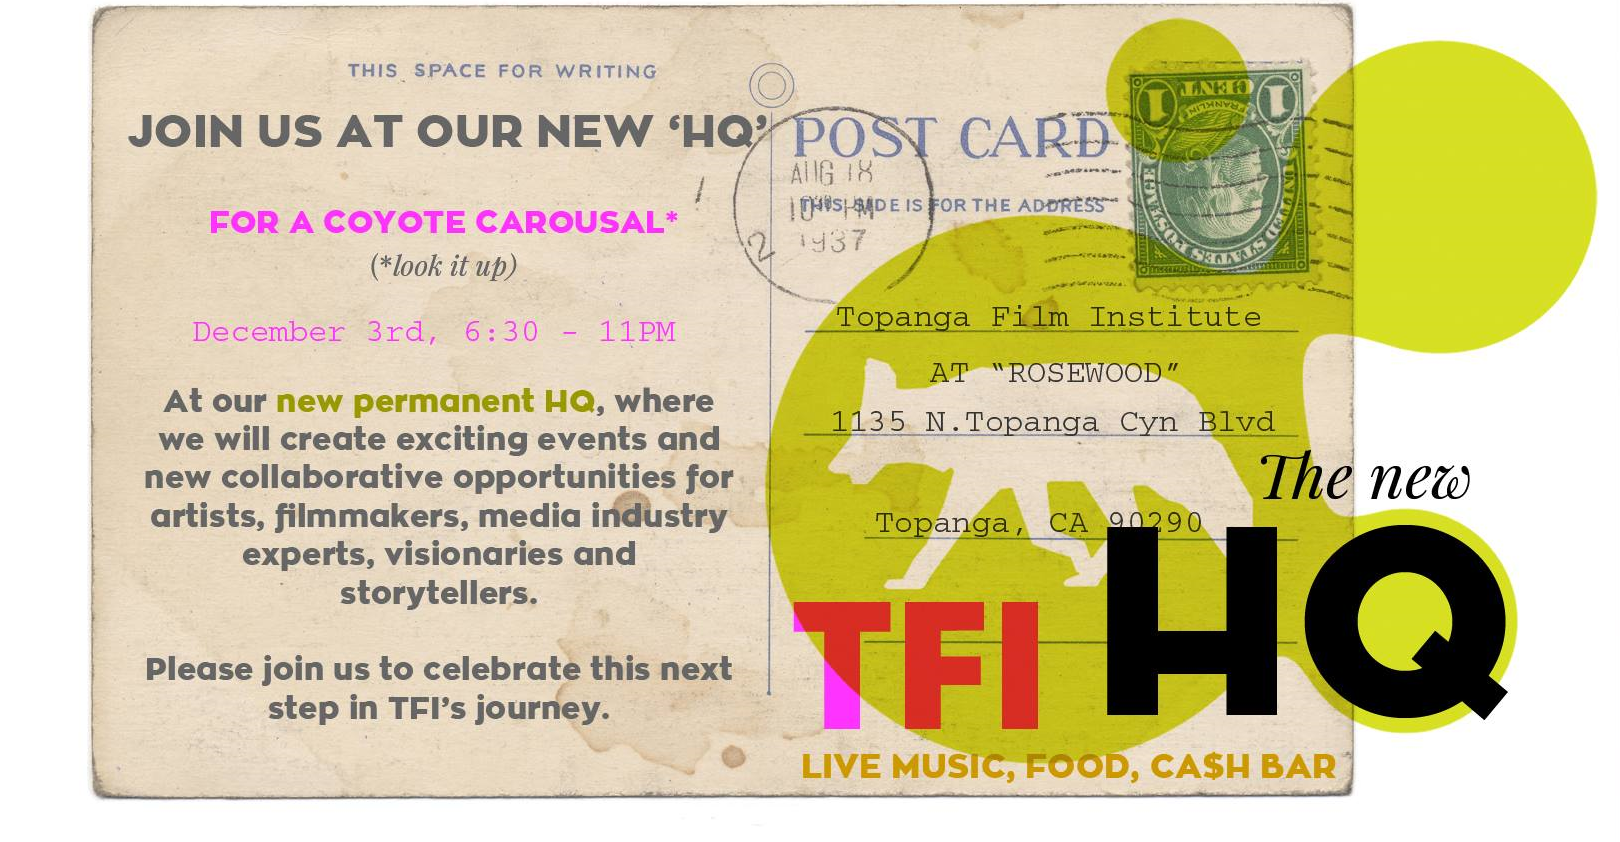 """THE COYOTE IS ON THE MOVE…       Topanga Film Institute has a new home:the new TFI HQ.   Please join us to celebrate this next step in TFI's journey!      PLEASE RSVP HERE:   info@topangafilminstitute.org     Topanga Film Institute HQ   Rosewood,1135 N Topanga Canyon Blvd, Topanga, CA 90290    Date: December 3  Time: 6.30 - 11 PM    Music, food and cash bar.      Welcome!      BIG THANKS TO OUR SPONSORS AND PARTNERS, BONNIE MORGAN AND JANEK DOMBROWA!      """"Rosewood in Topanga is a new workplace that aspires to be a nexus of art and technology in Topanga Canyon.We are excited to announce that we are now anchored by the Topanga Film Institute and Festival and our partnership with them promotes these mutual goals."""" -  Bonnie Morgan and Janek Dombrowa"""